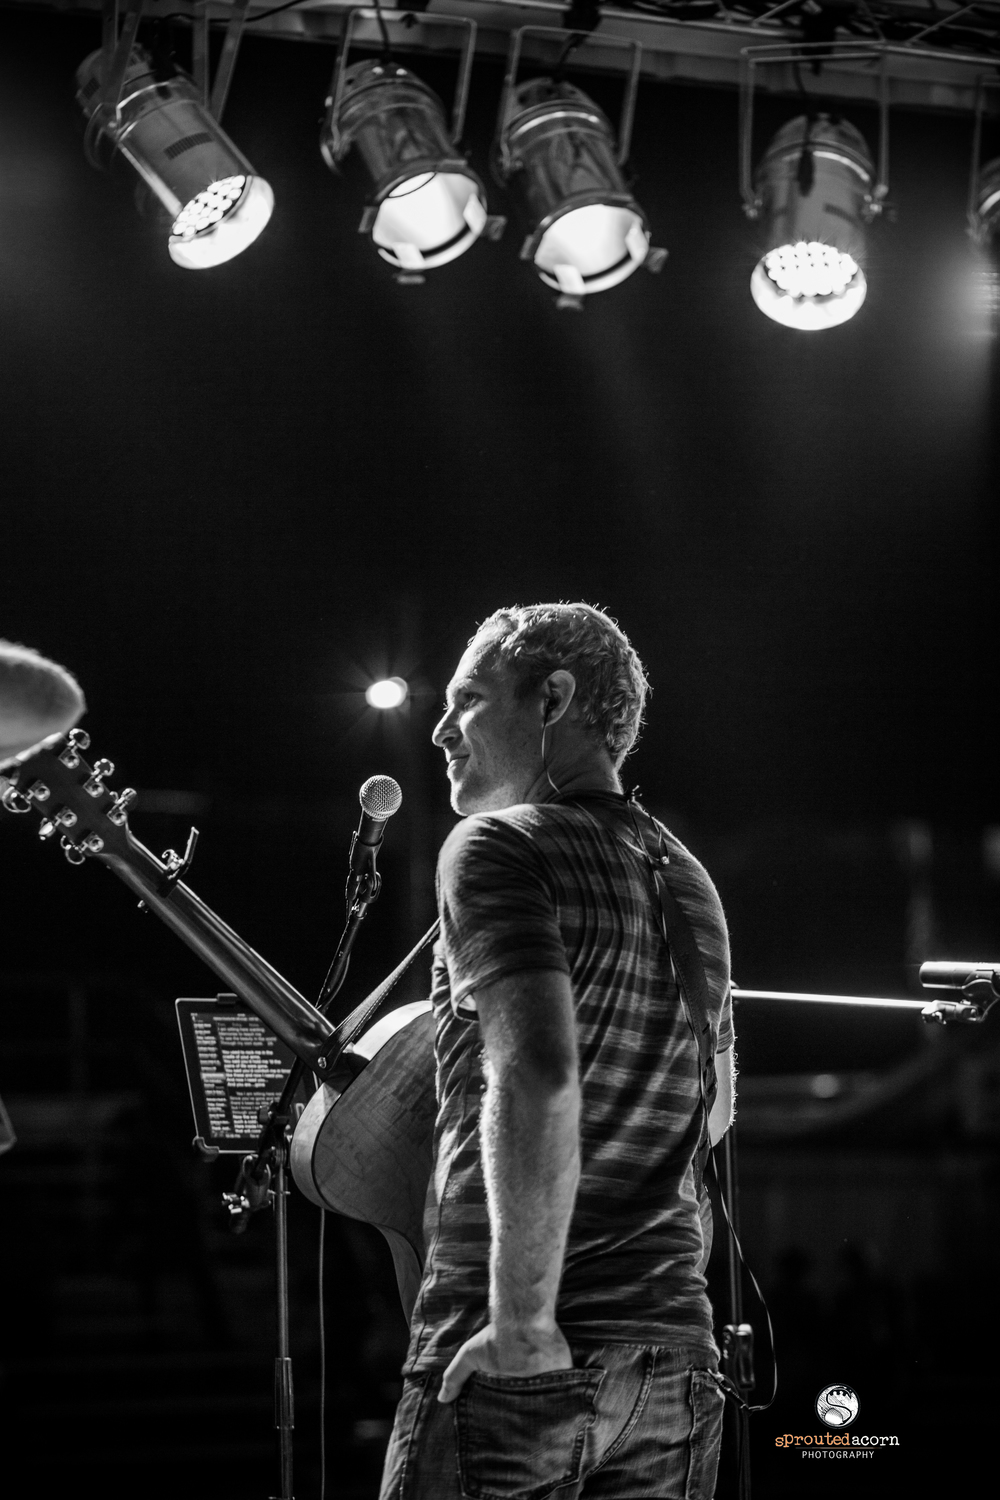 Honeytown at the Holmes County Fair August 12 2016 (26 of 35).jpg